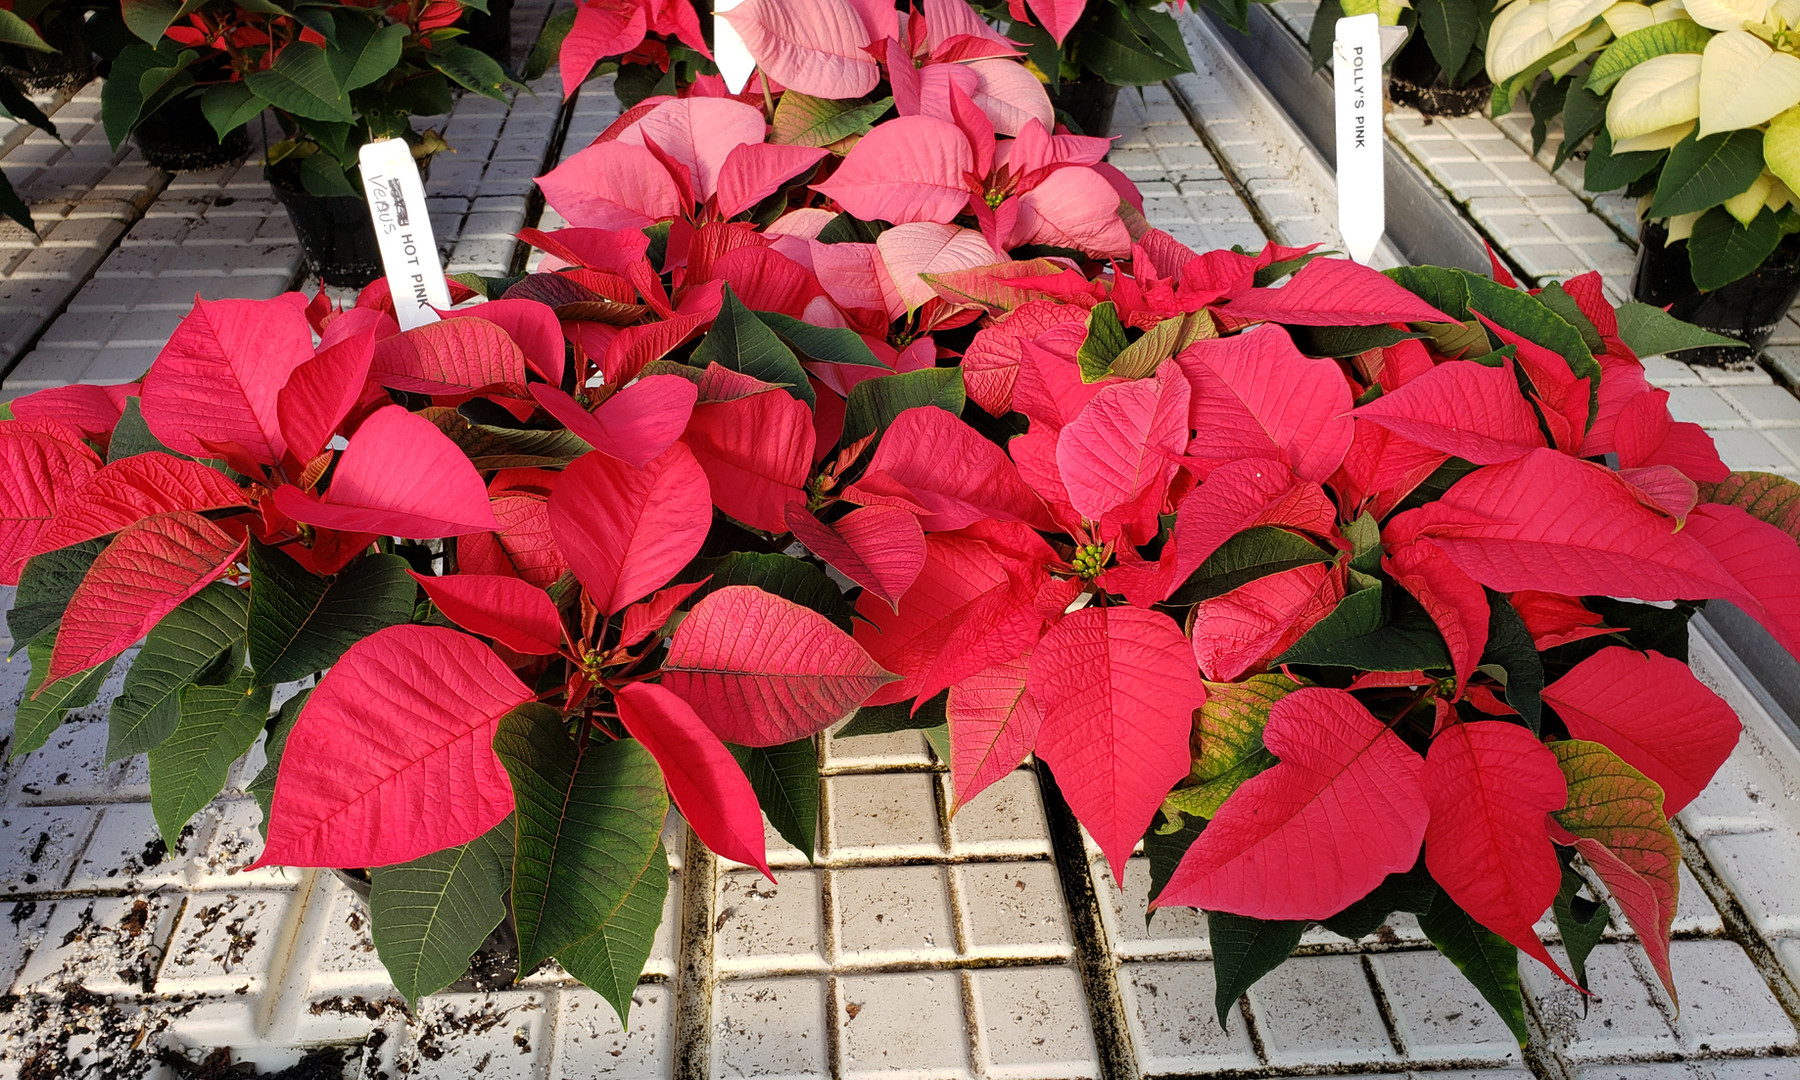 Left - Venus Hot Pink Back Pink Right Polly's Pink Poinsettia